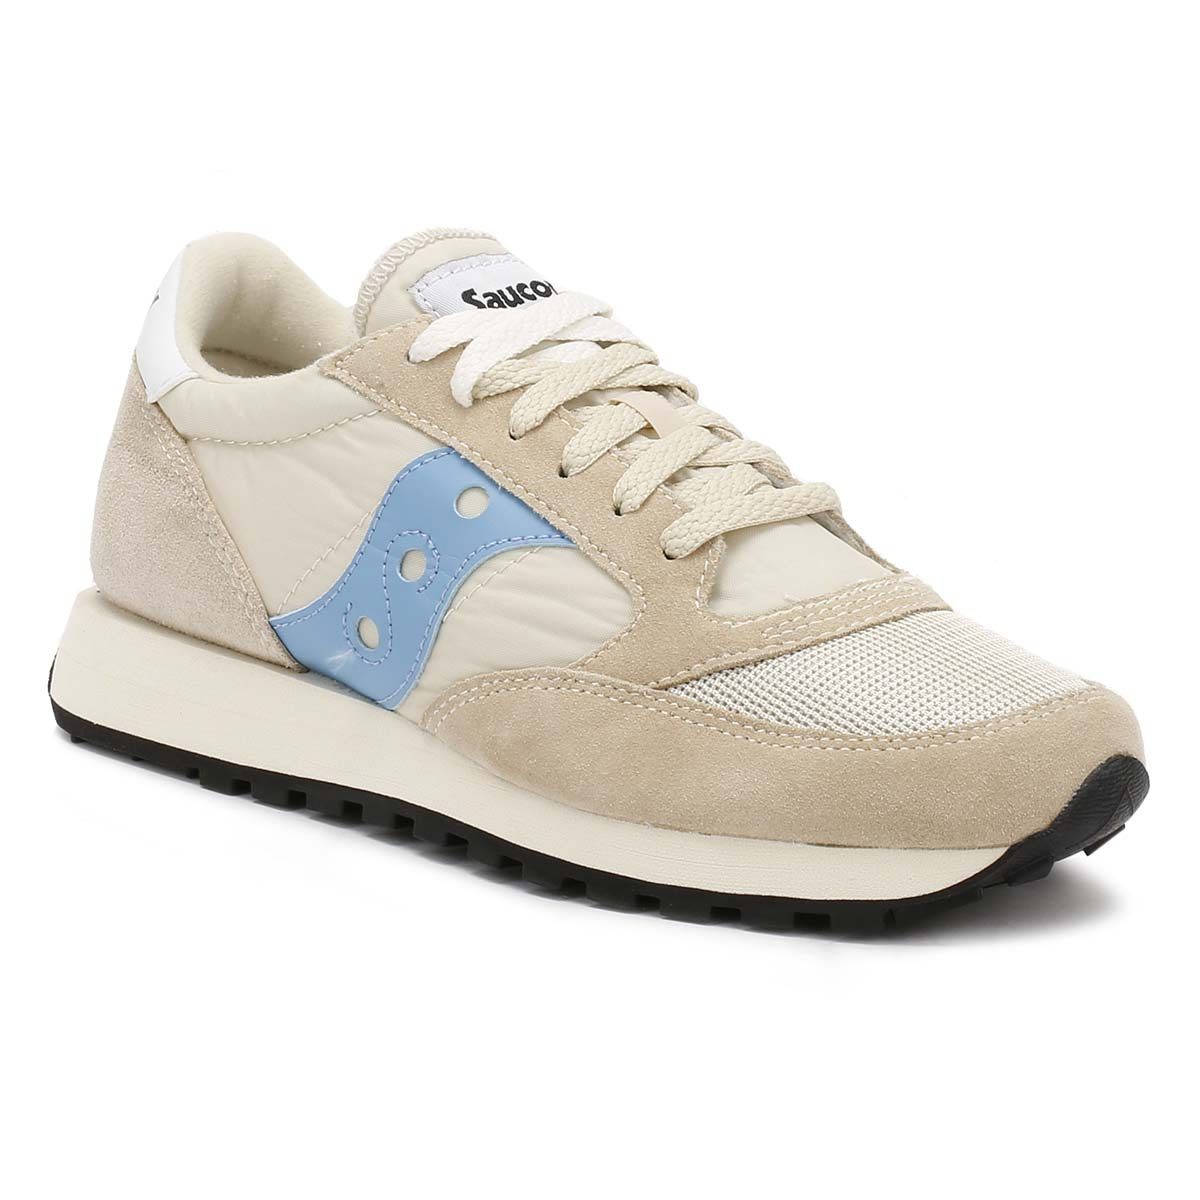 1b77f83cee0e Details about Saucony Unisex Trainers